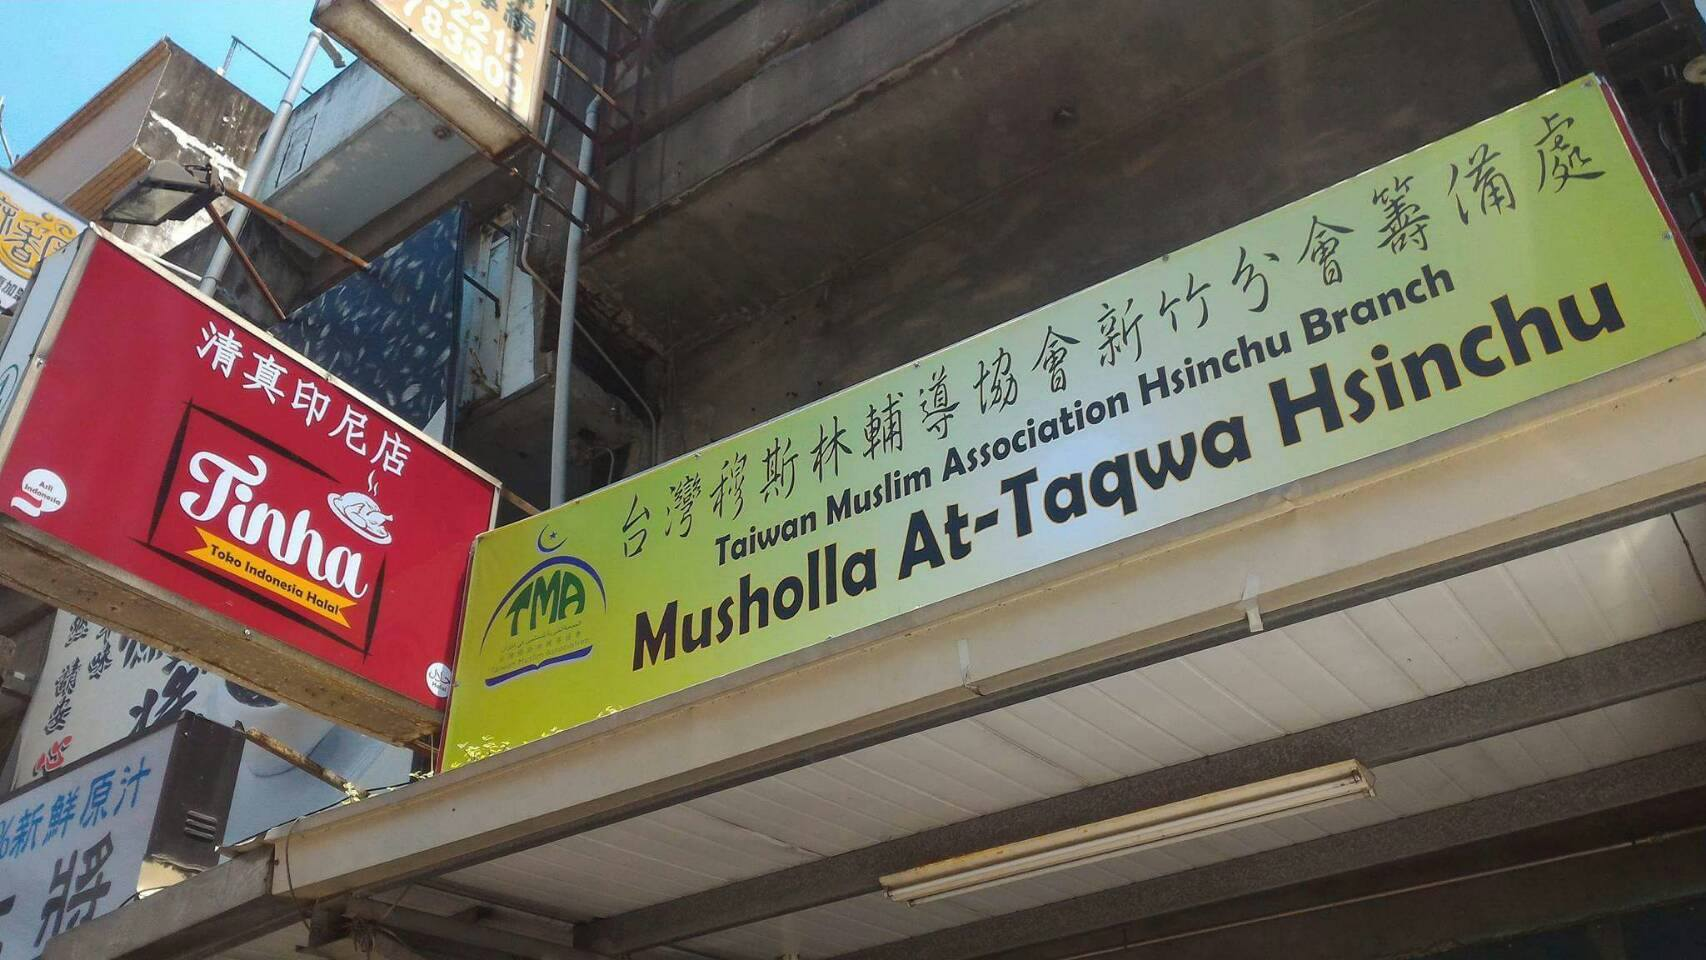 Musholla At-taqwa Hsinchu